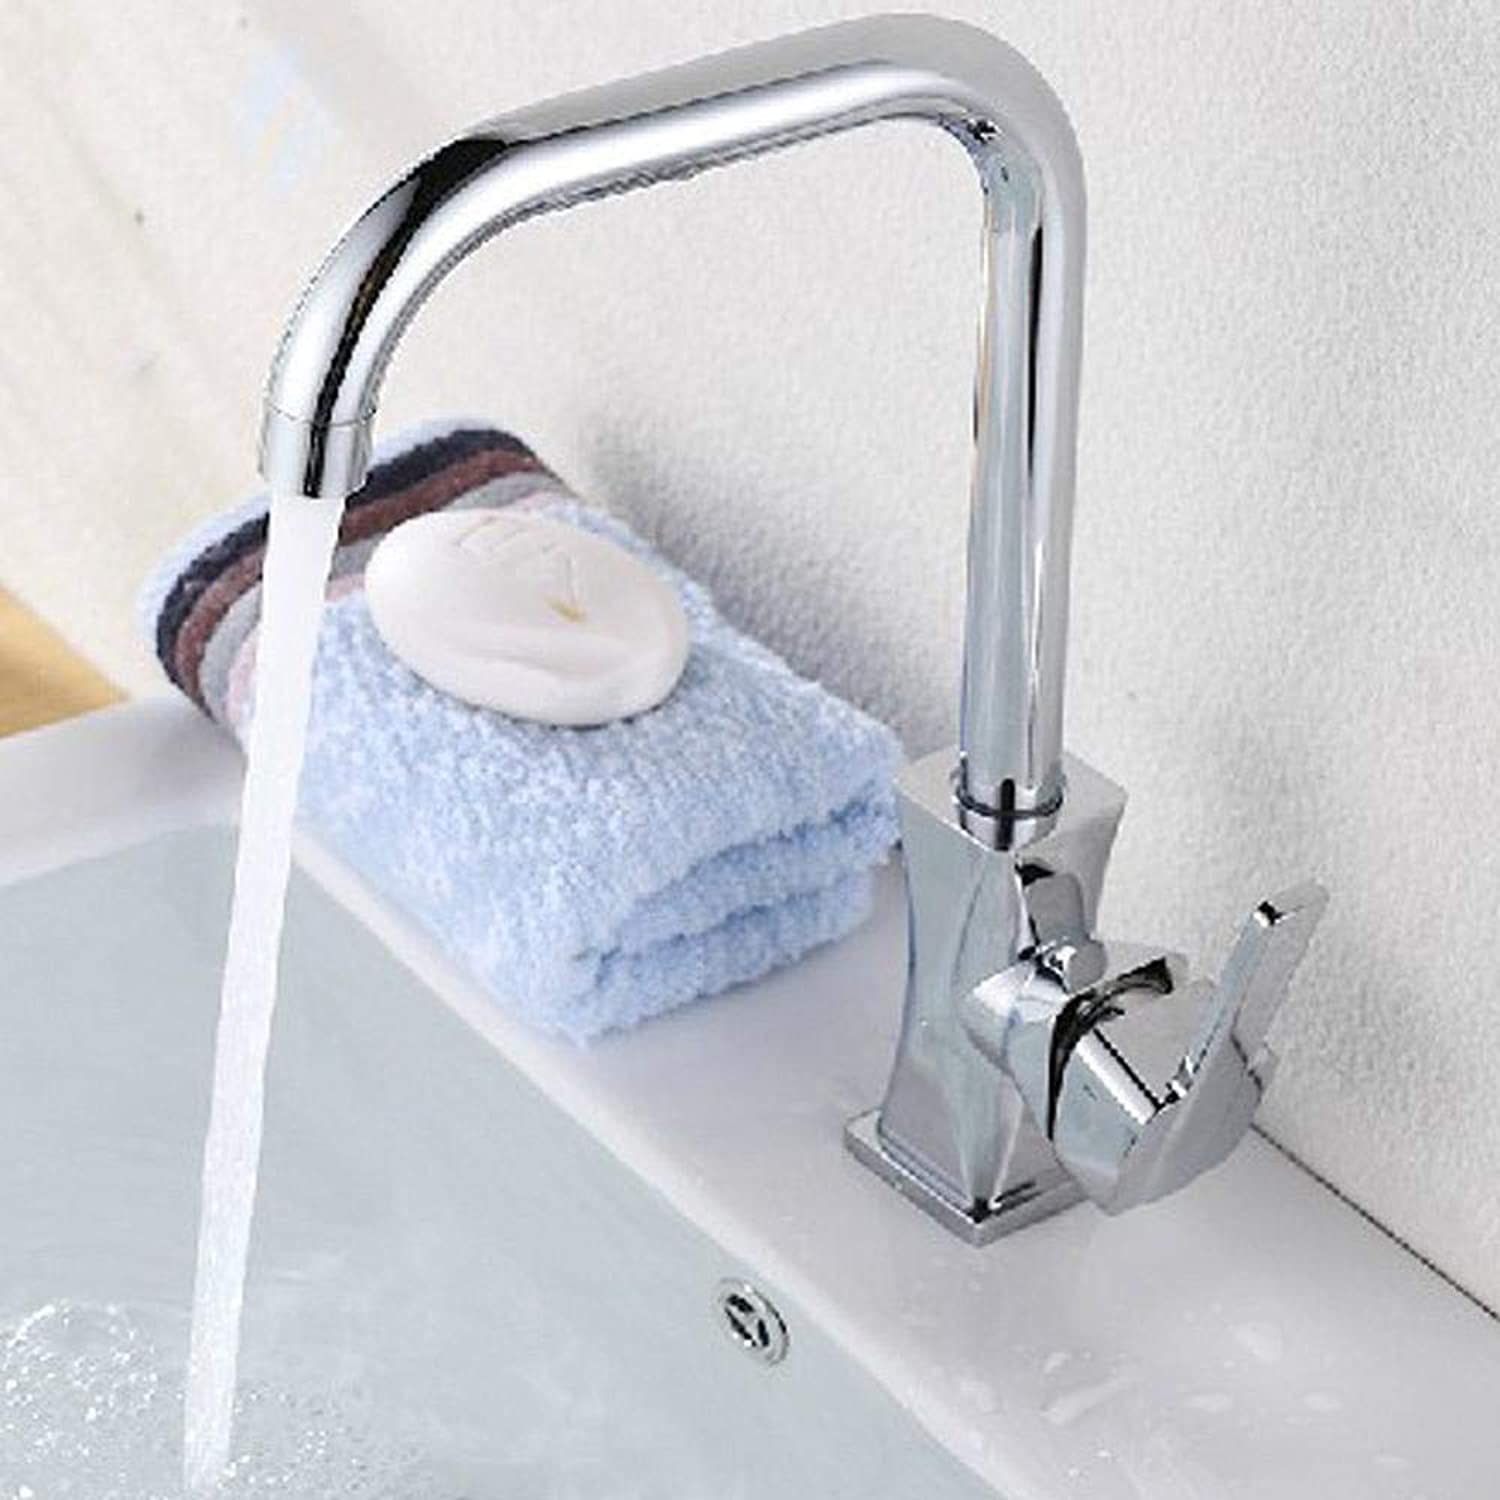 Qpw Hot and Cold Kitchen Faucet Sink Vegetable Basin Aggravating Single Hole Faucet